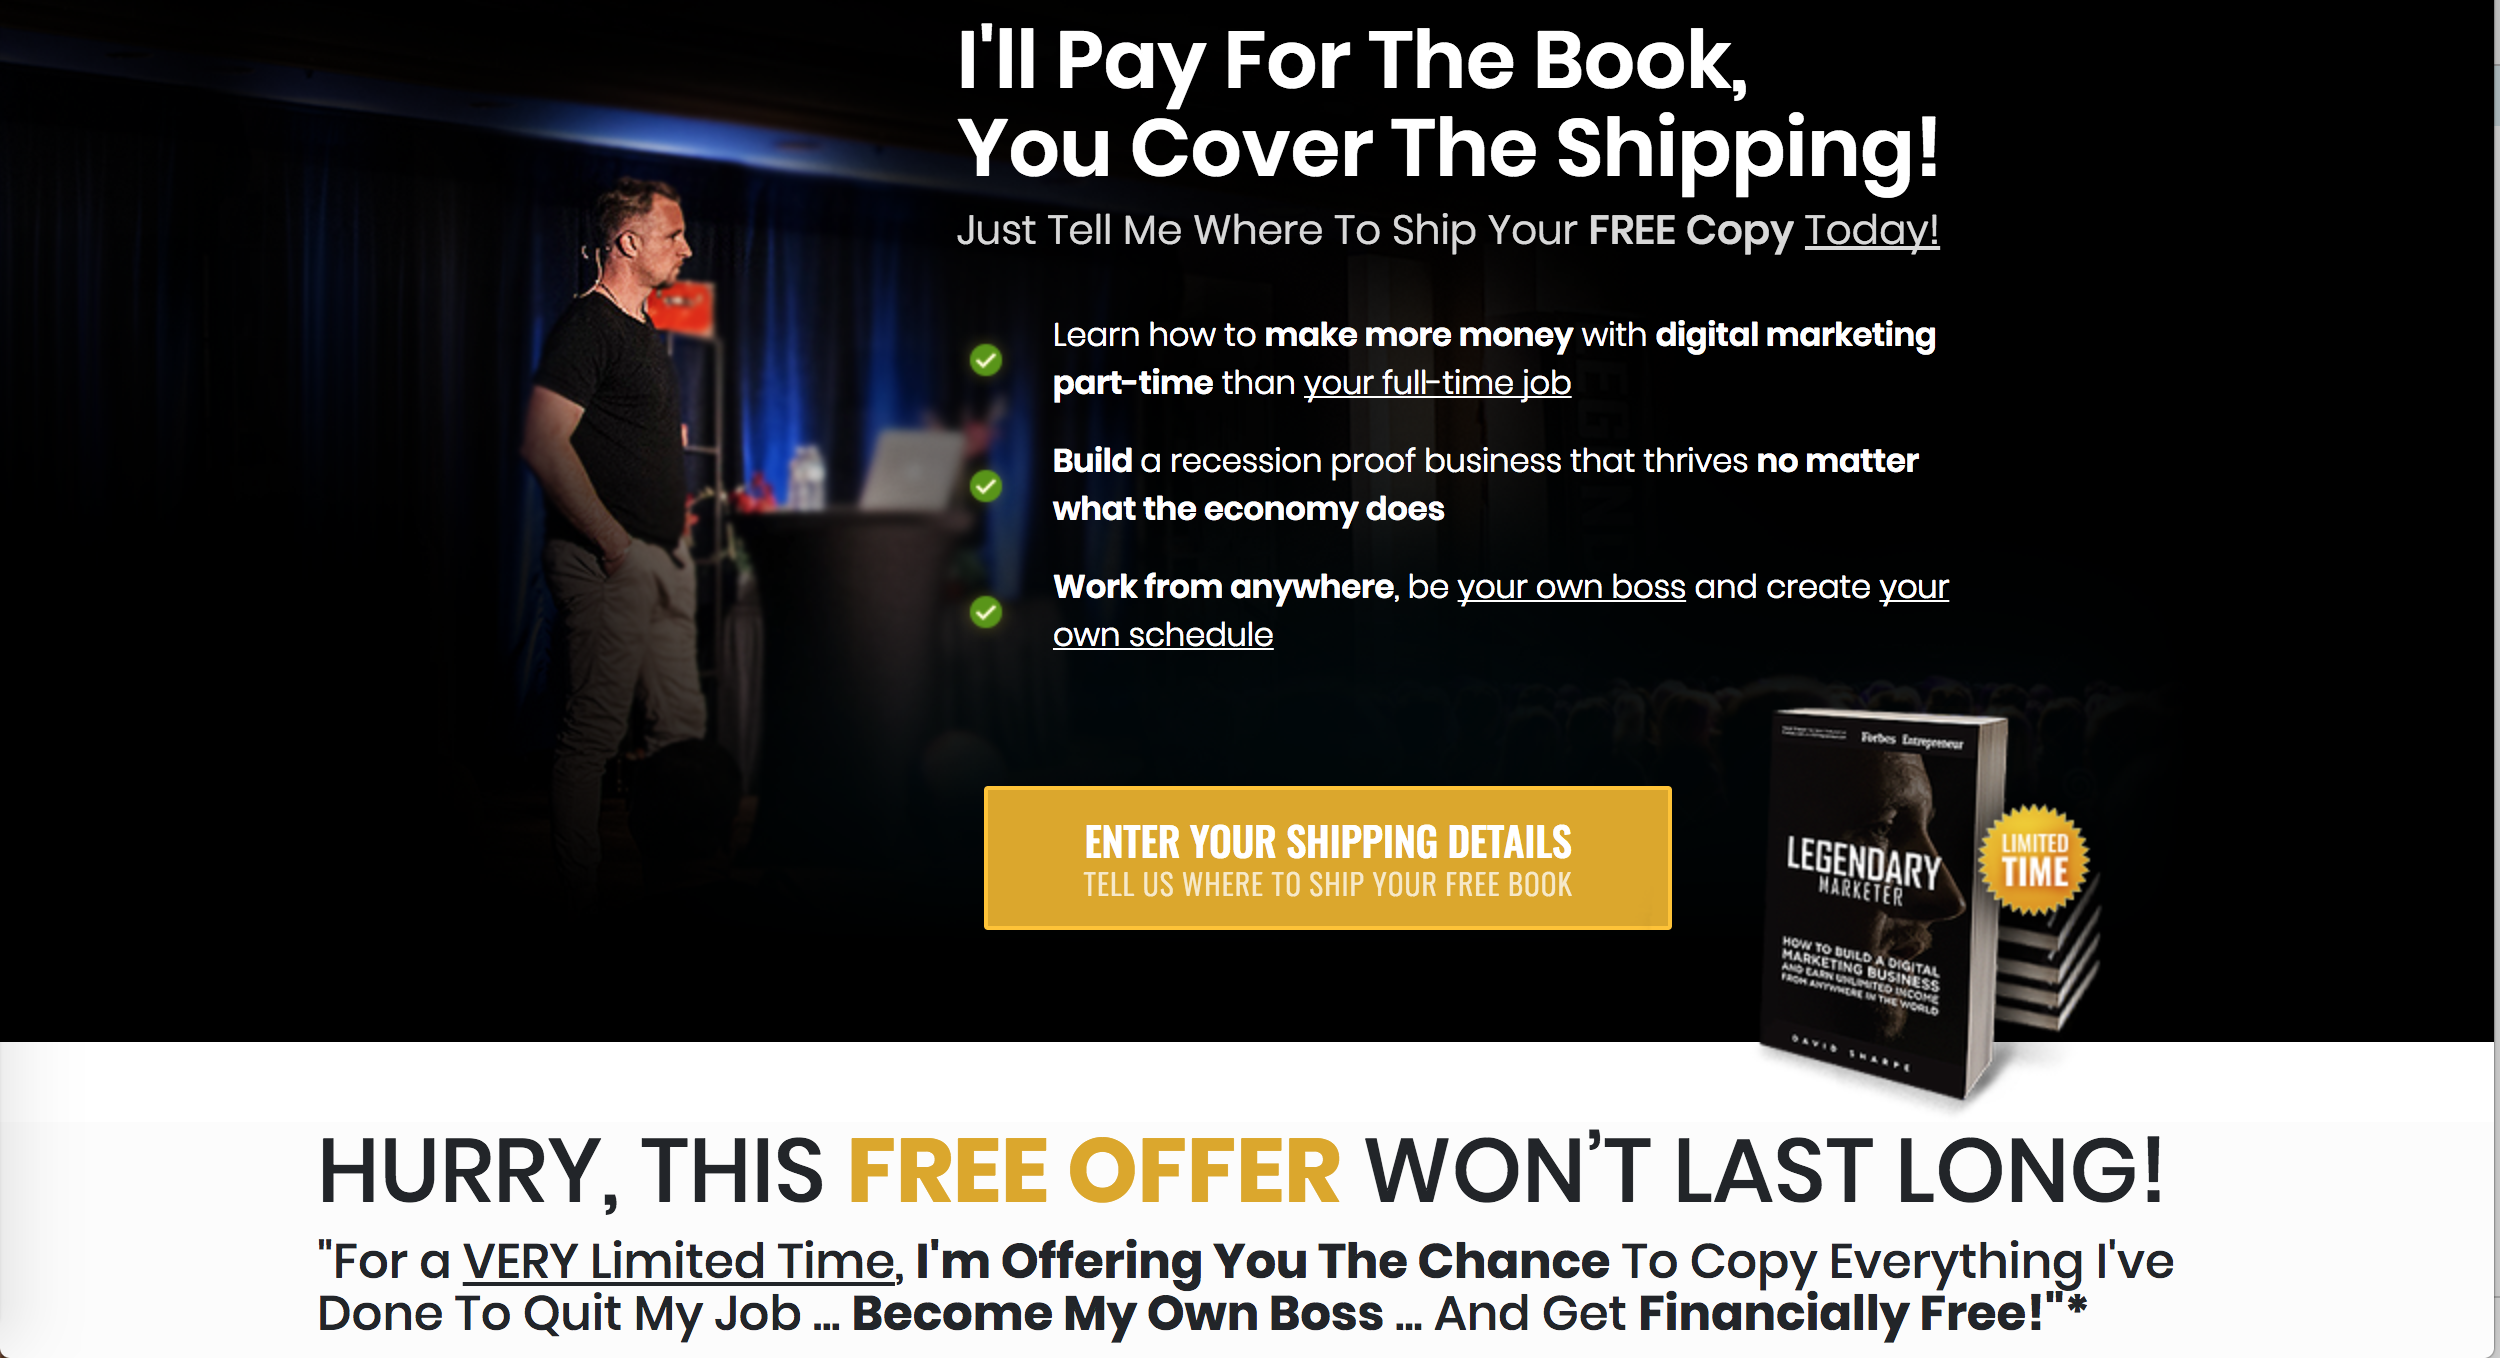 Buy Internet Marketing Program Legendary Marketer Thanksgiving Deals